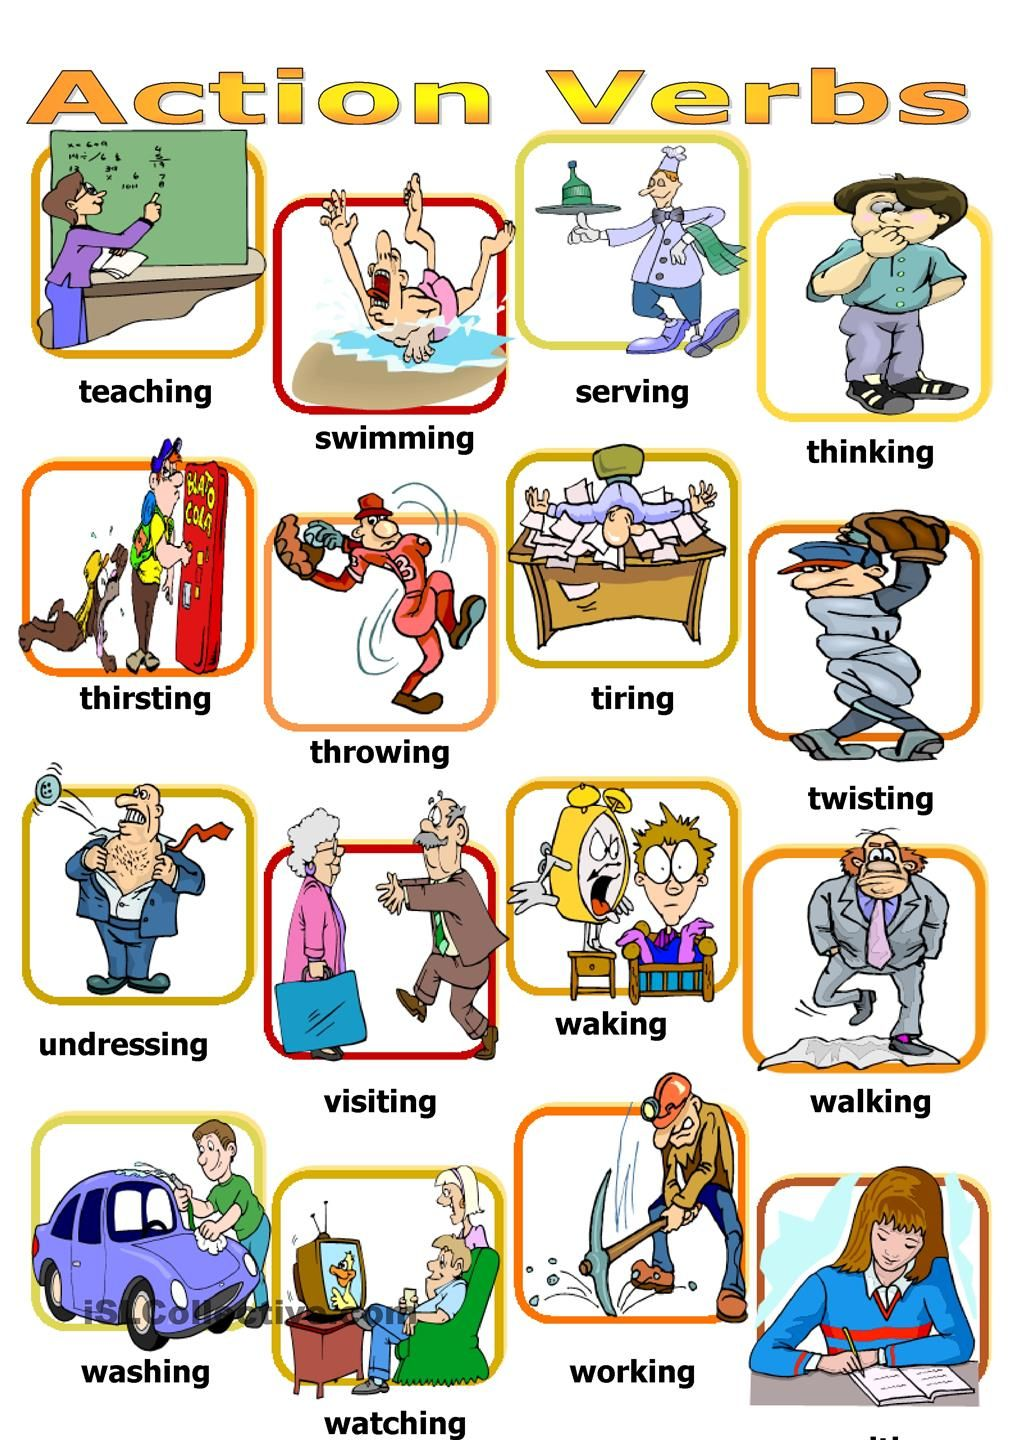 Action verbs board game | อังกฤษ 2 | Pinterest